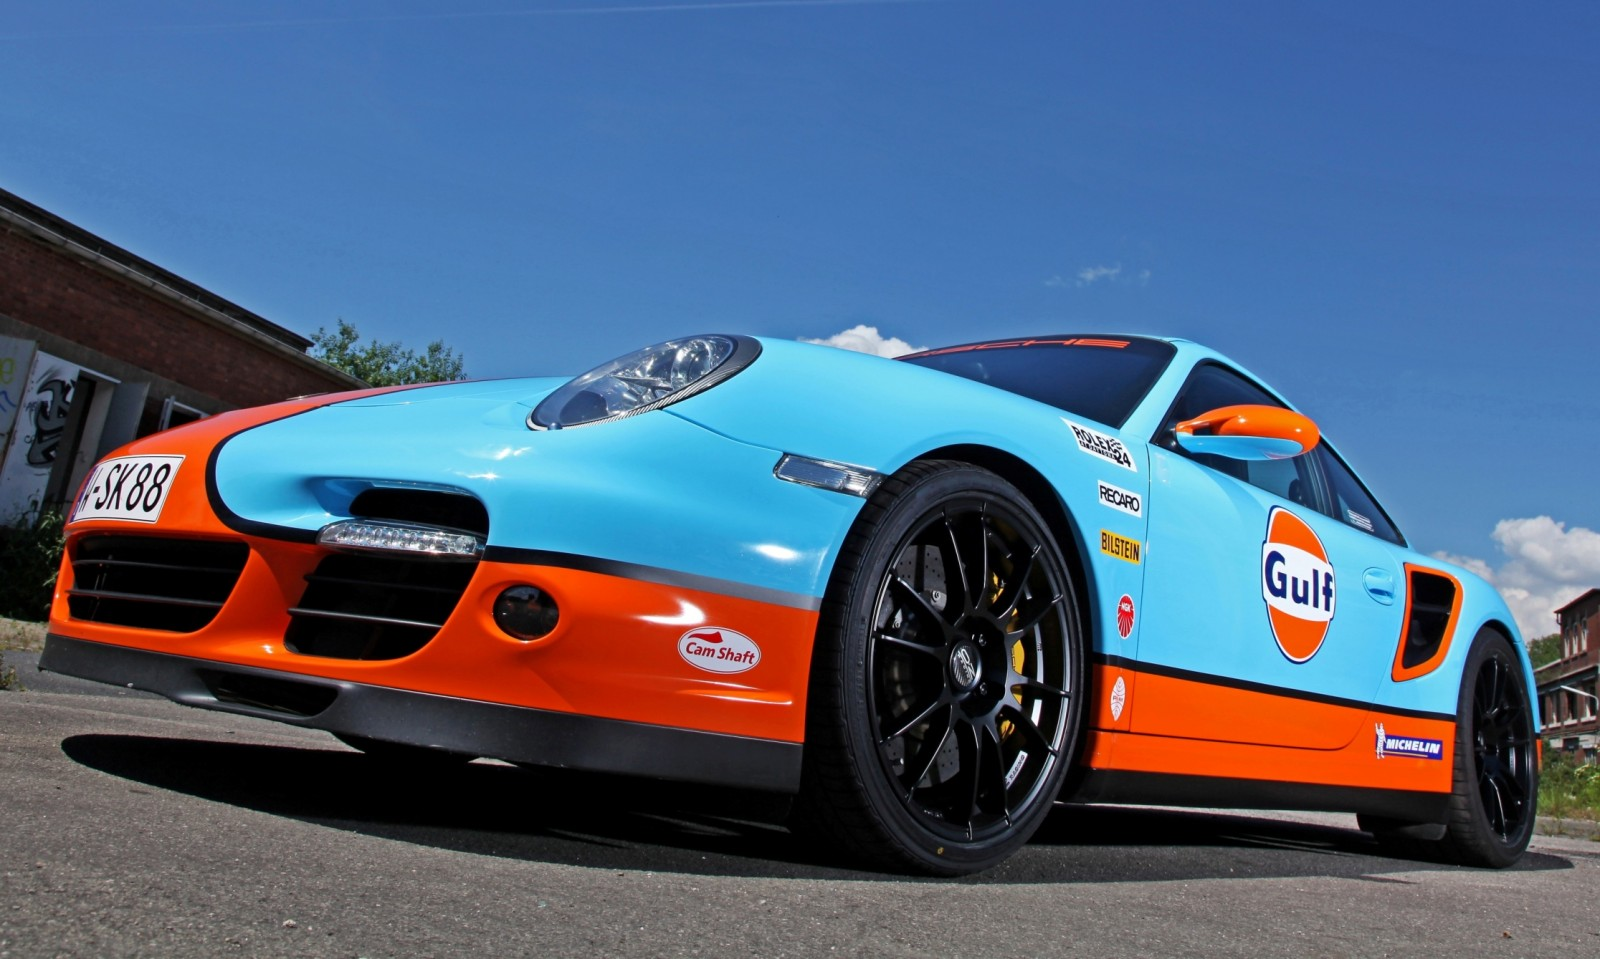 Gulf Racing Livery by CAM SHAFT for the Porsche 911 Turbo 13